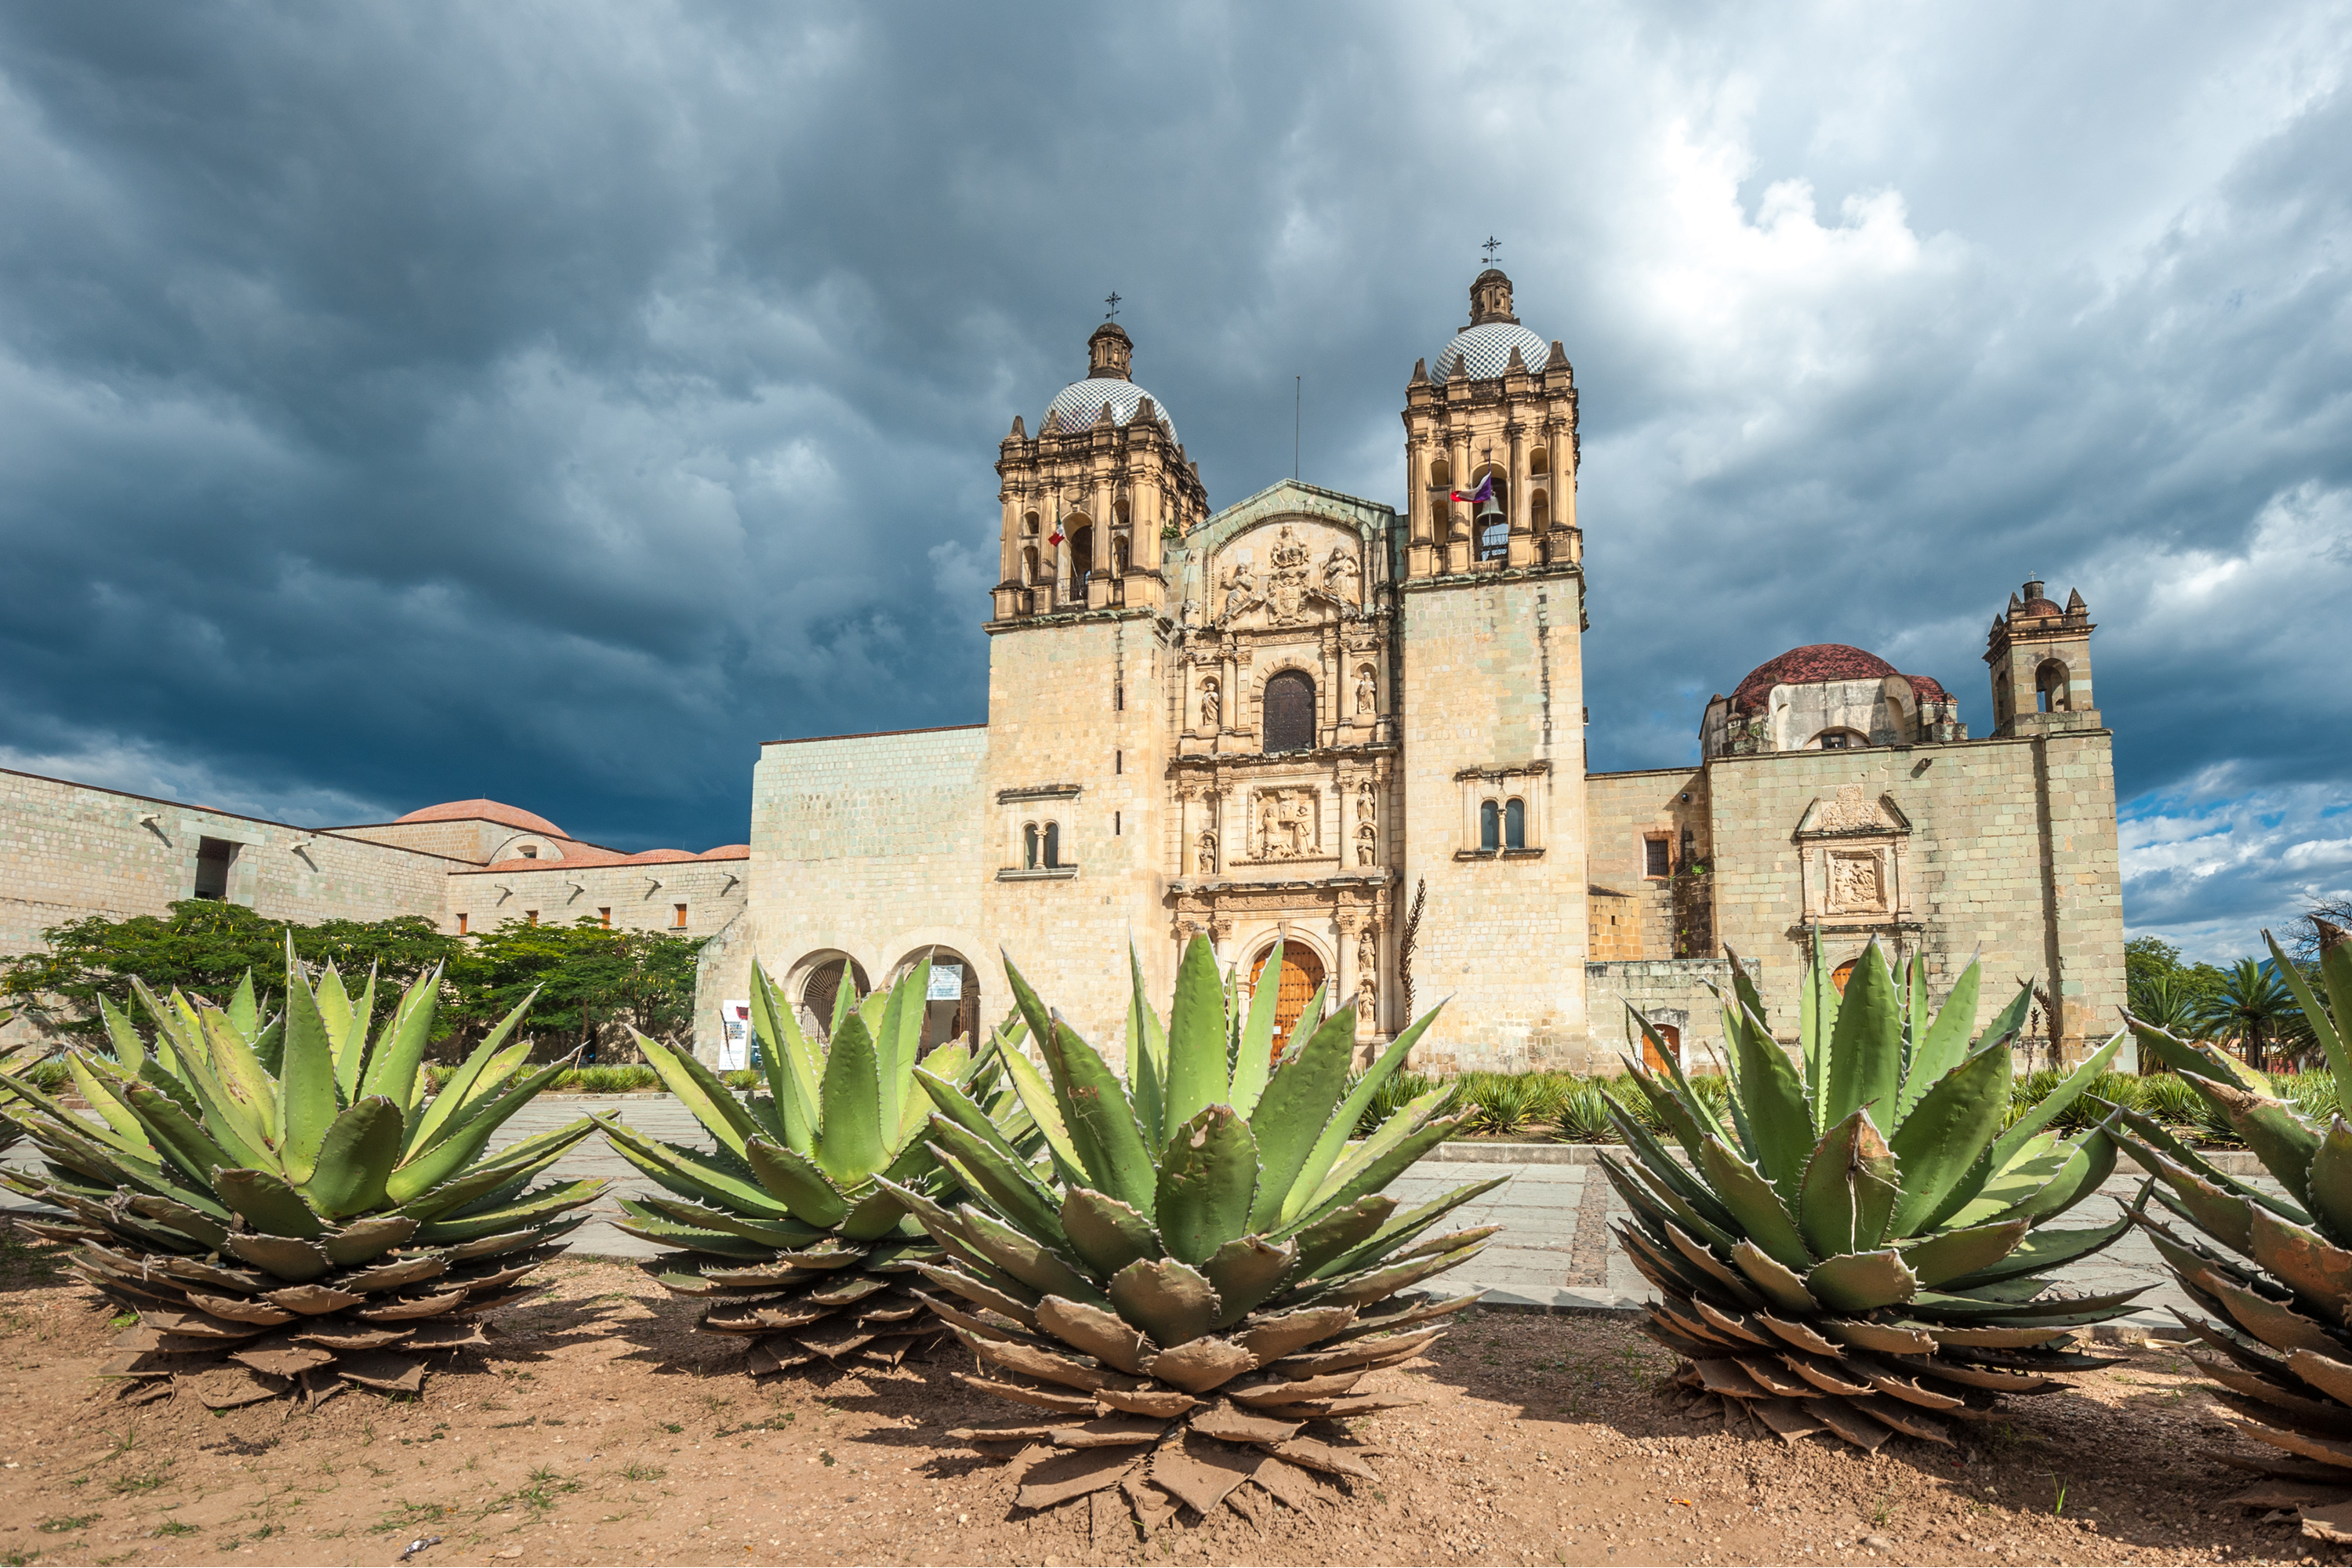 Oaxaca | Oaxaca Mexico | Mexico | vacation | vacation destination | destination | south of the boarder